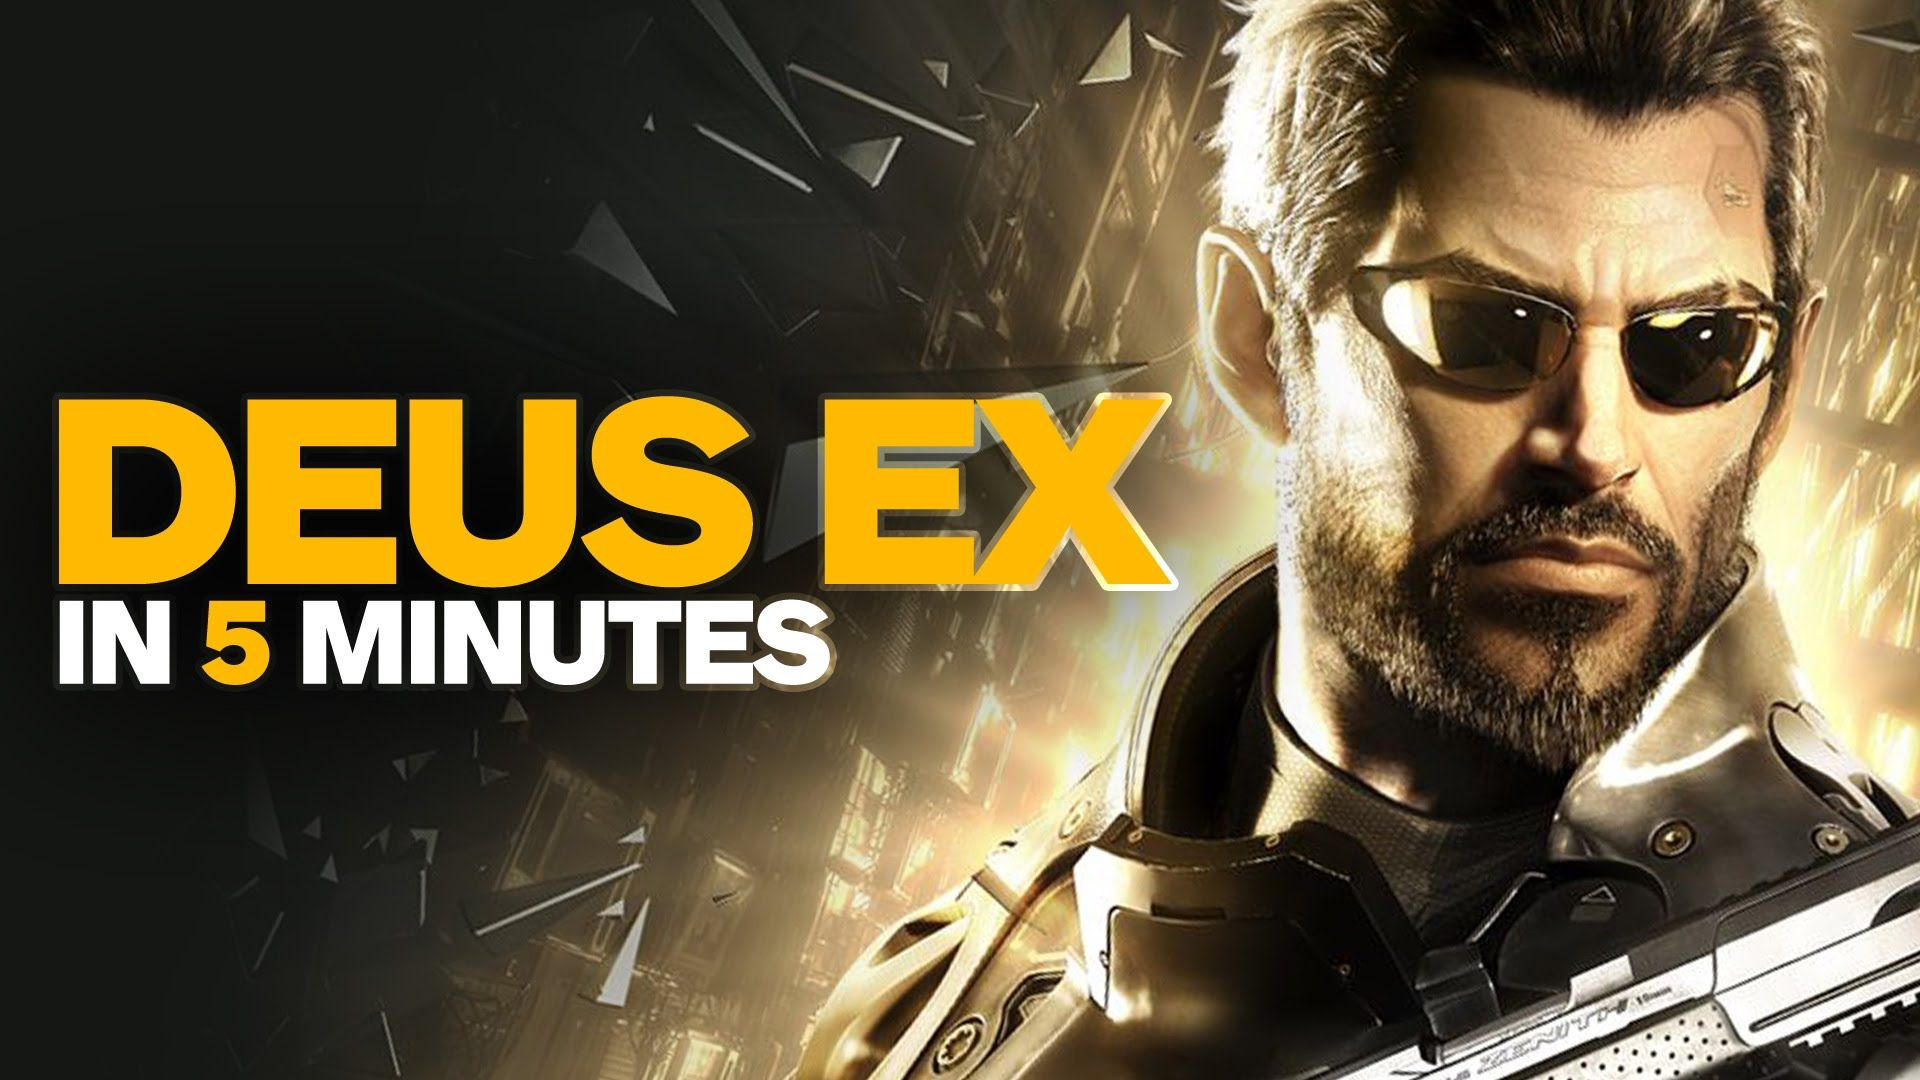 deus ex in 5 minutes computer games games video games videogames